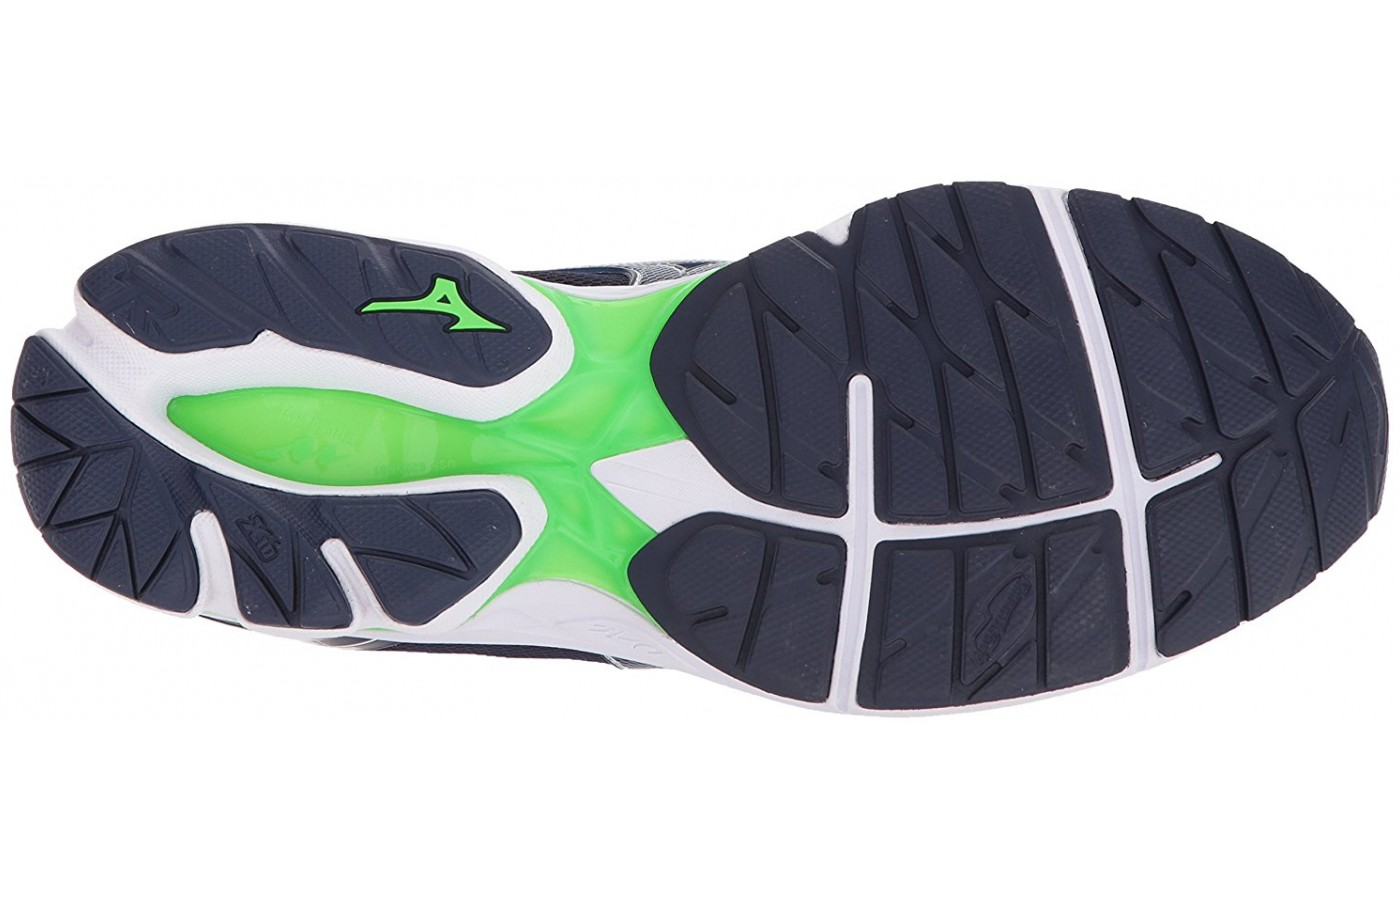 The durable outsole on the Mizuno Wave Rider 21